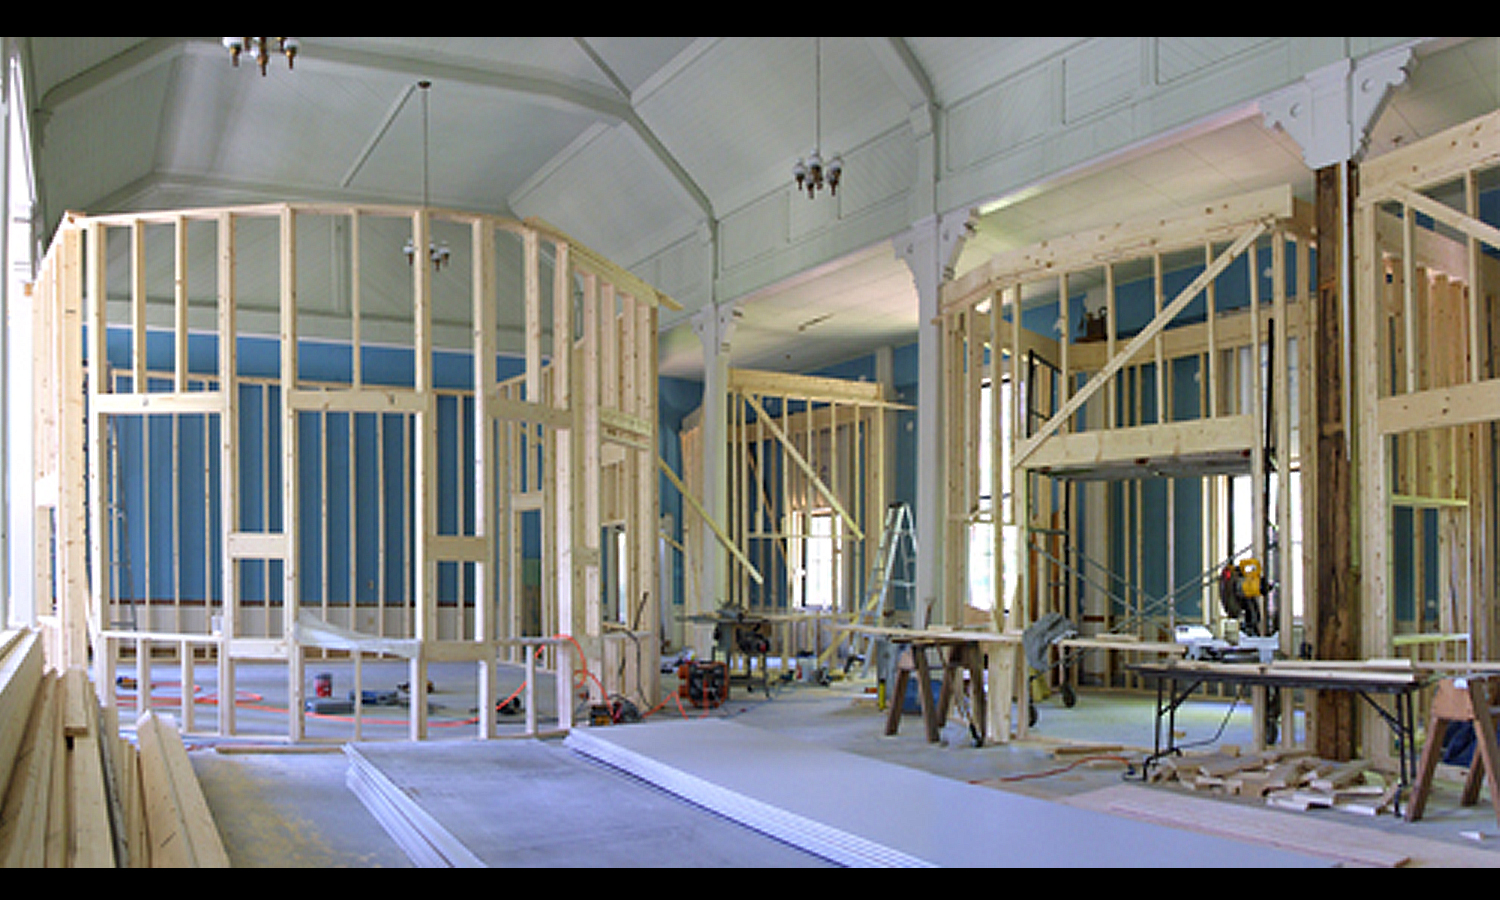 During construction - framing underway